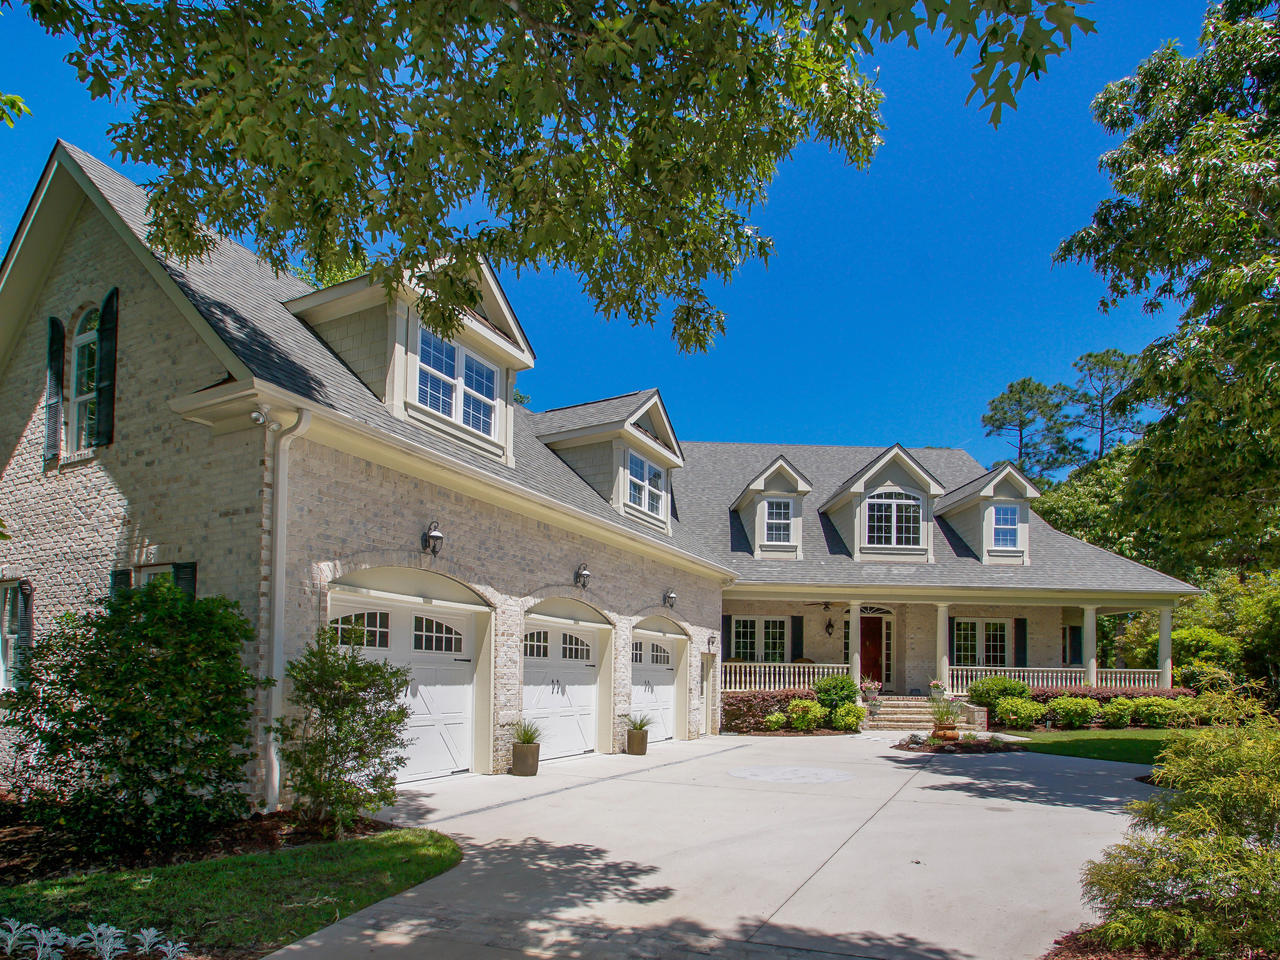 Single Family Home for Sale at Magnificent Custom-Built Masterpiece 476 Deep Water Drive SE Southport, North Carolina 28461 United States